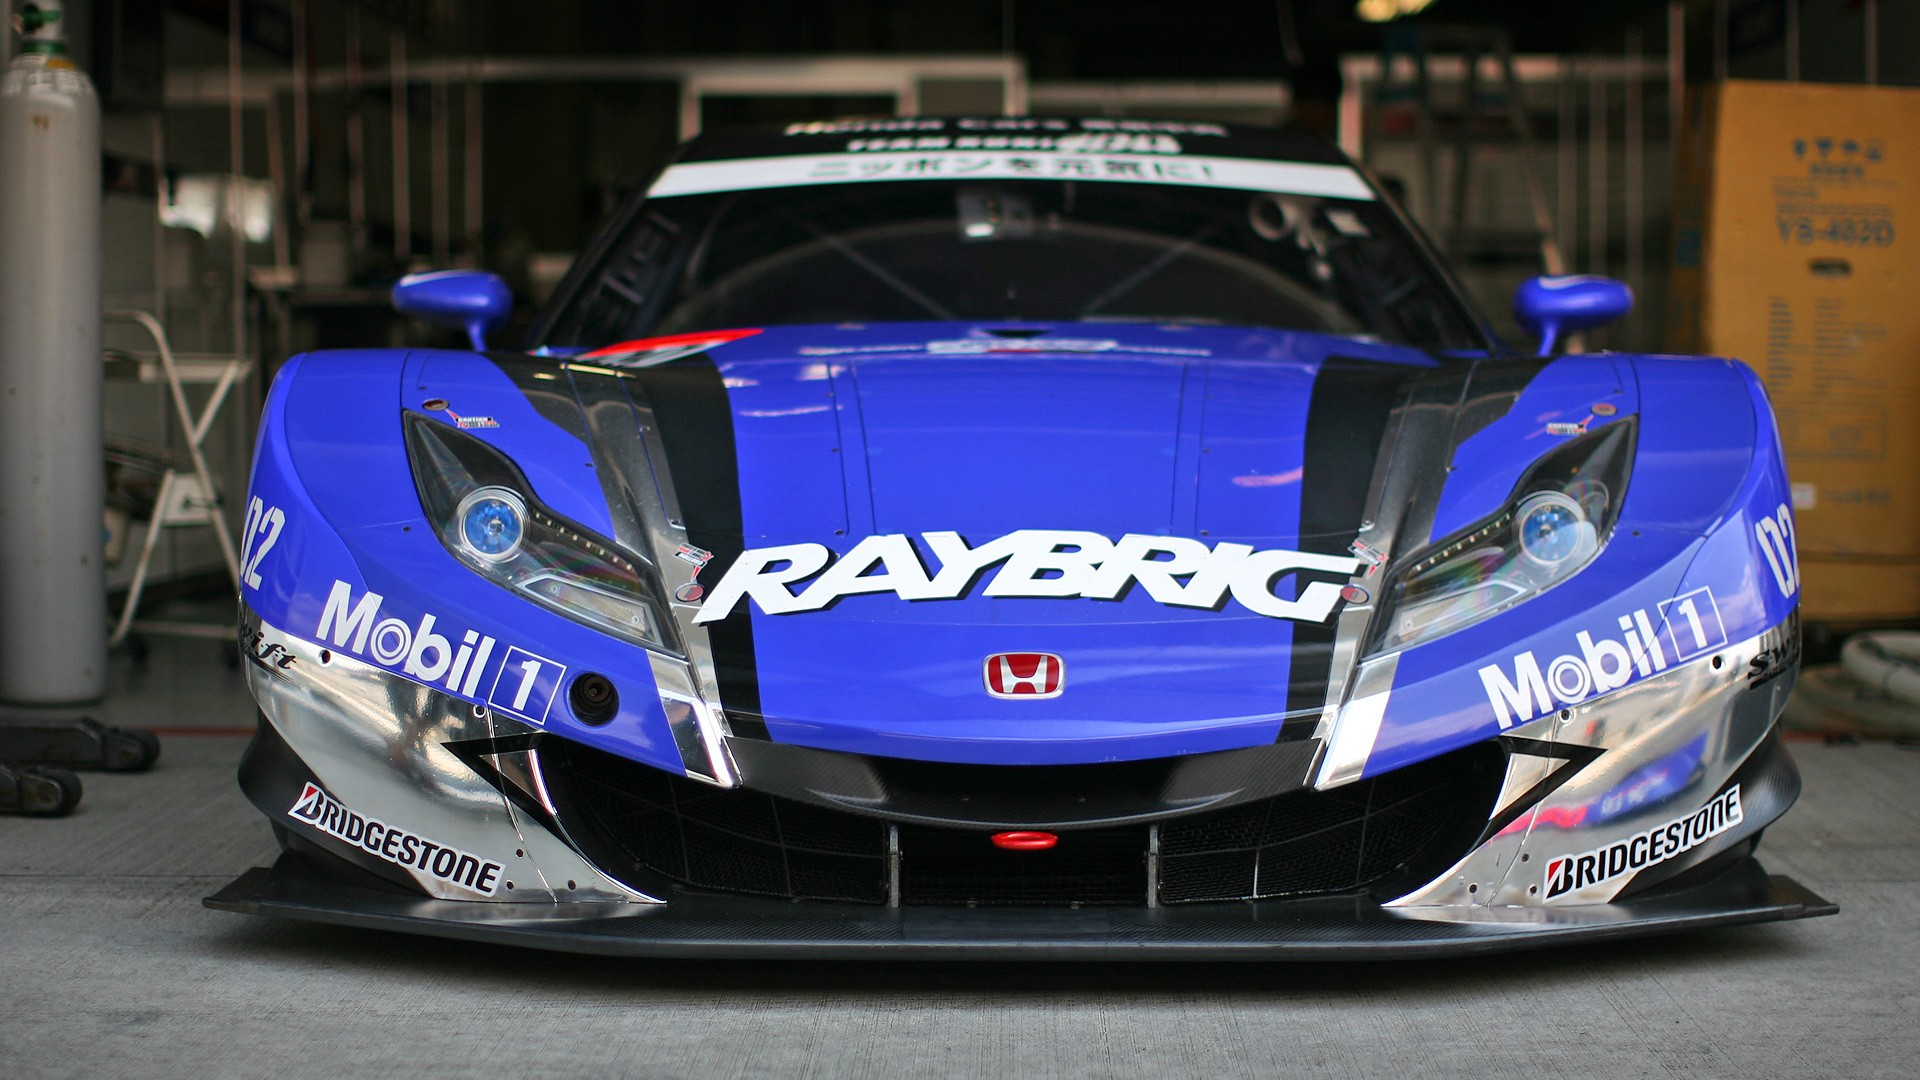 Raybrig Hsv Super Gt Wallpaper Hd Car Wallpapers Id 3108